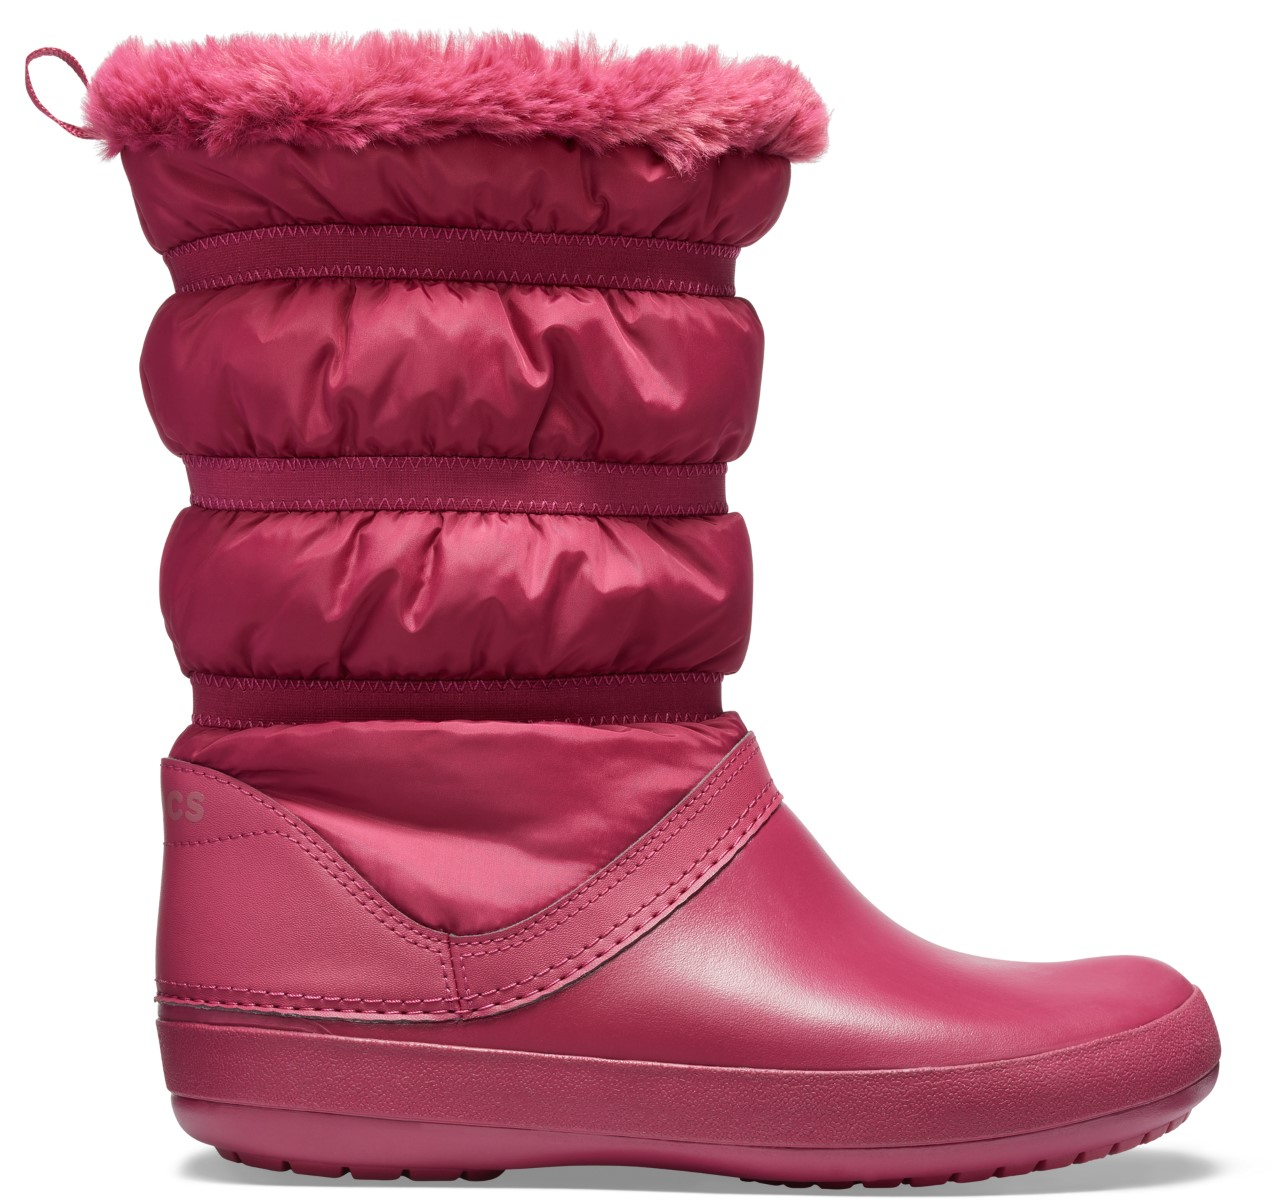 Crocs fuchsiové sněhule Crocband Winter Boot Pomegranate